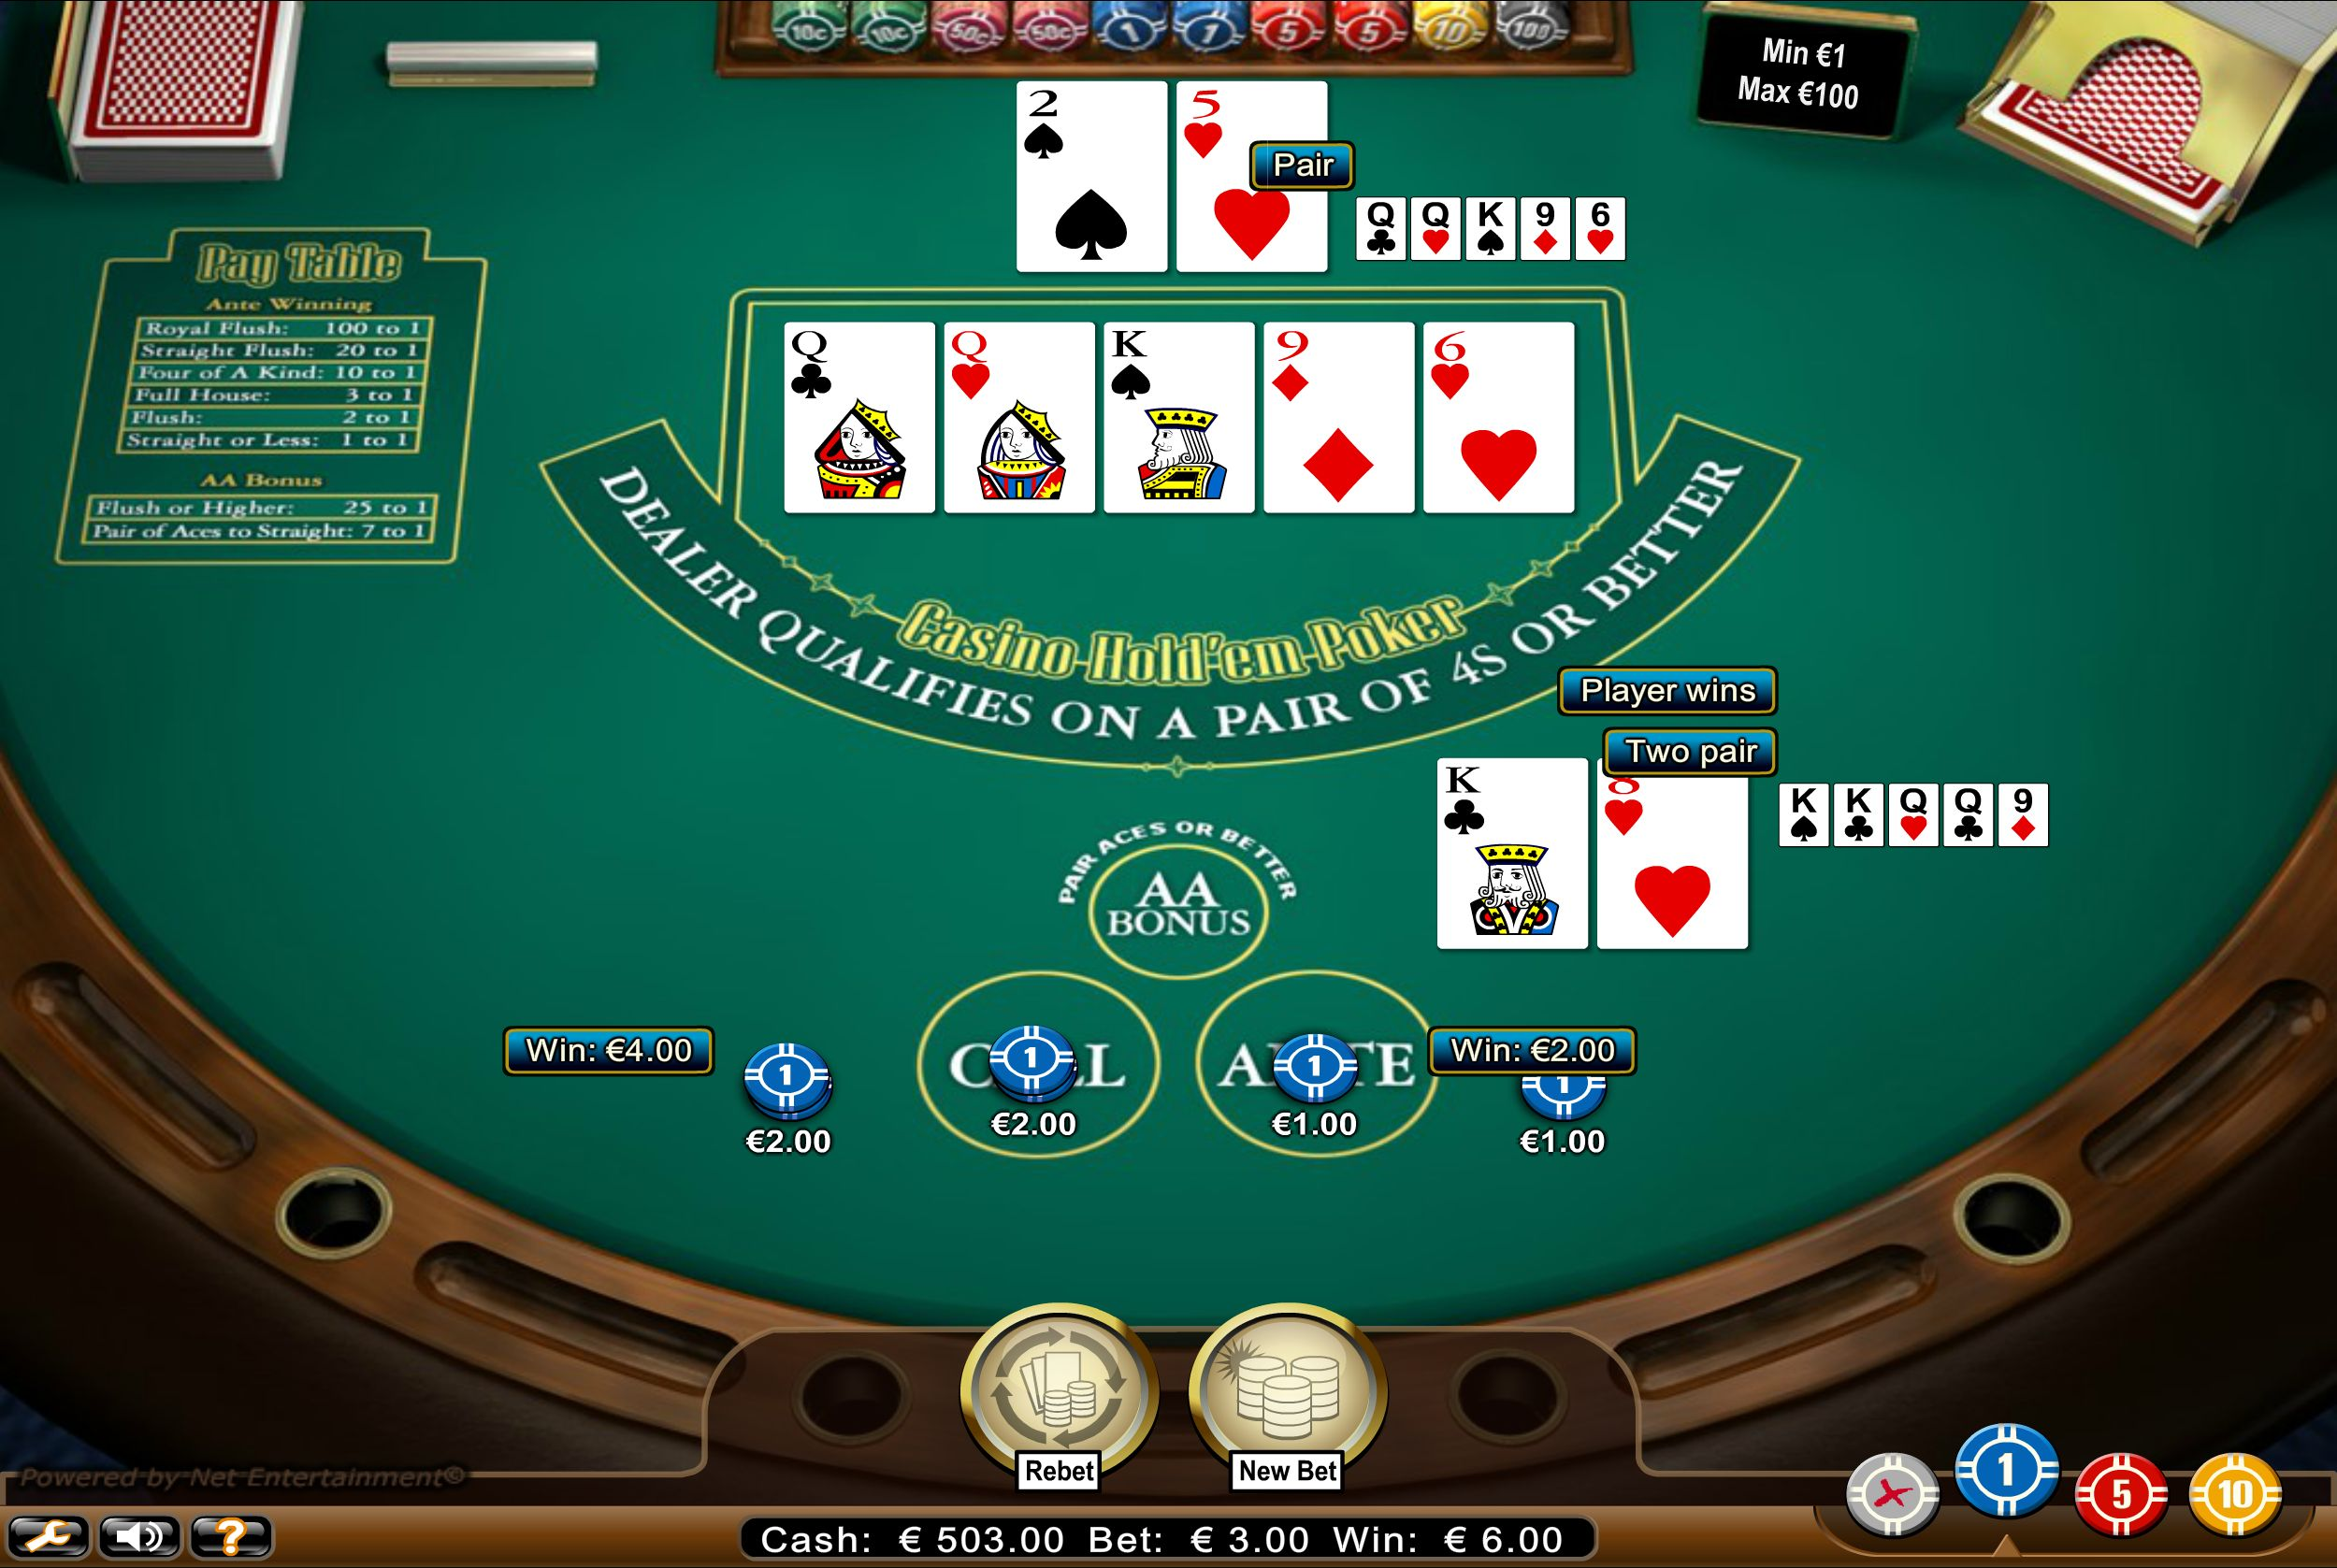 Comments About Holdem - 11141